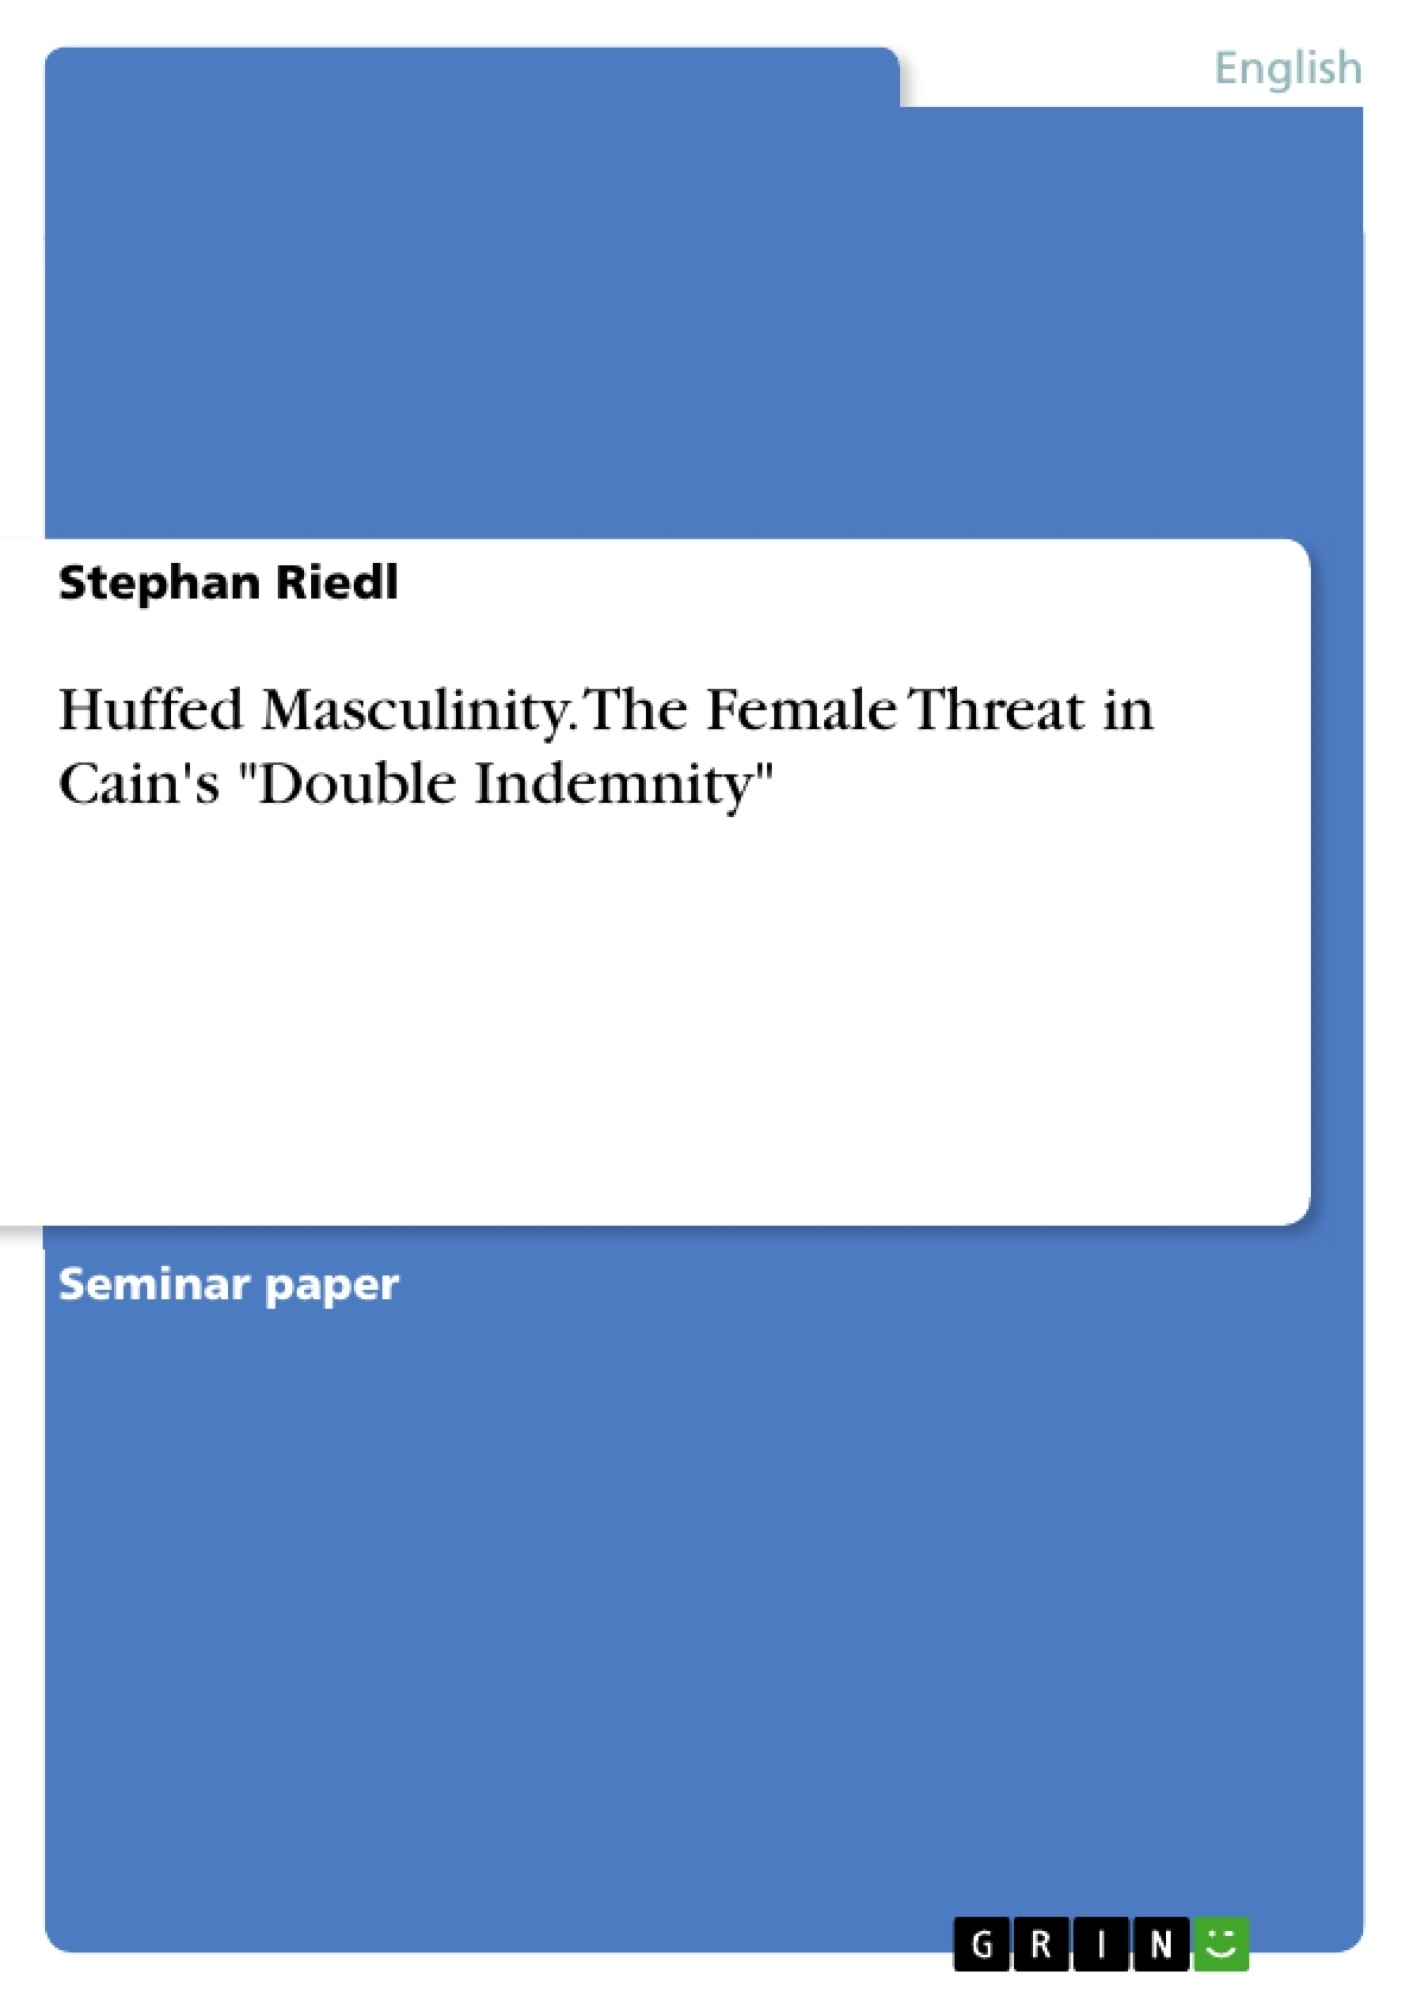 """Title: Huffed Masculinity. The Female Threat in Cain's """"Double Indemnity"""""""